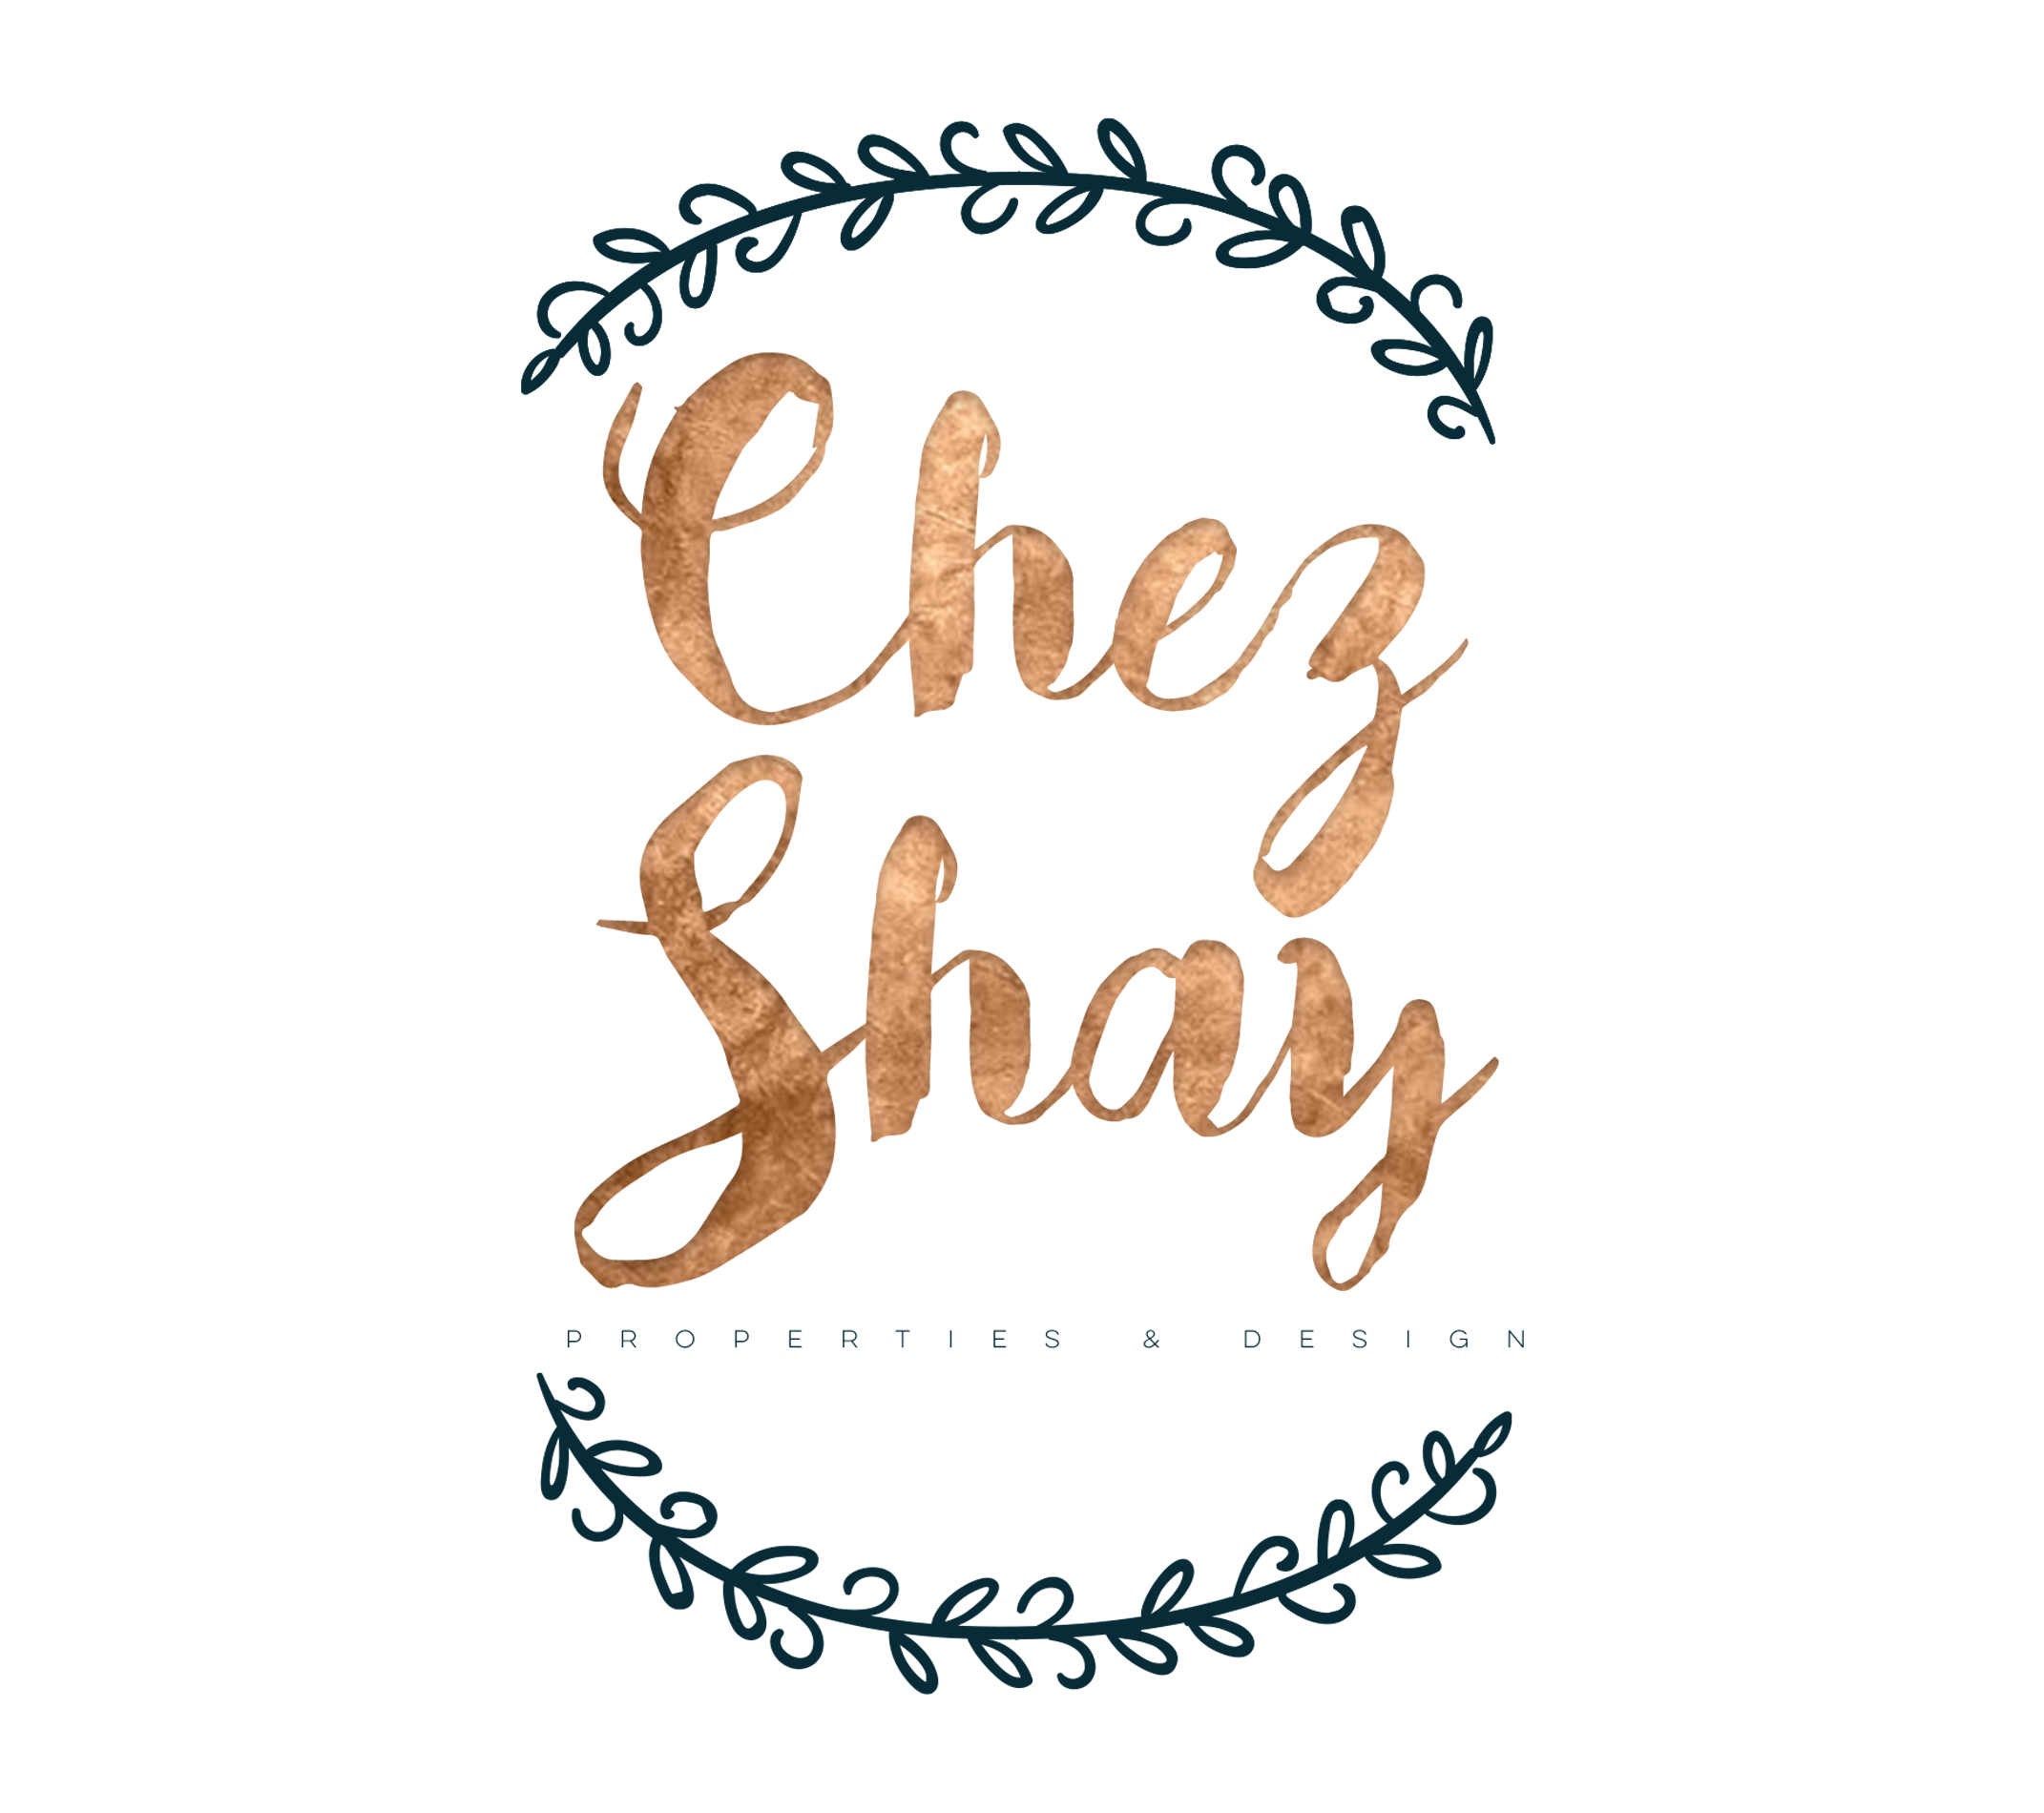 Chez Shay Properties & Design